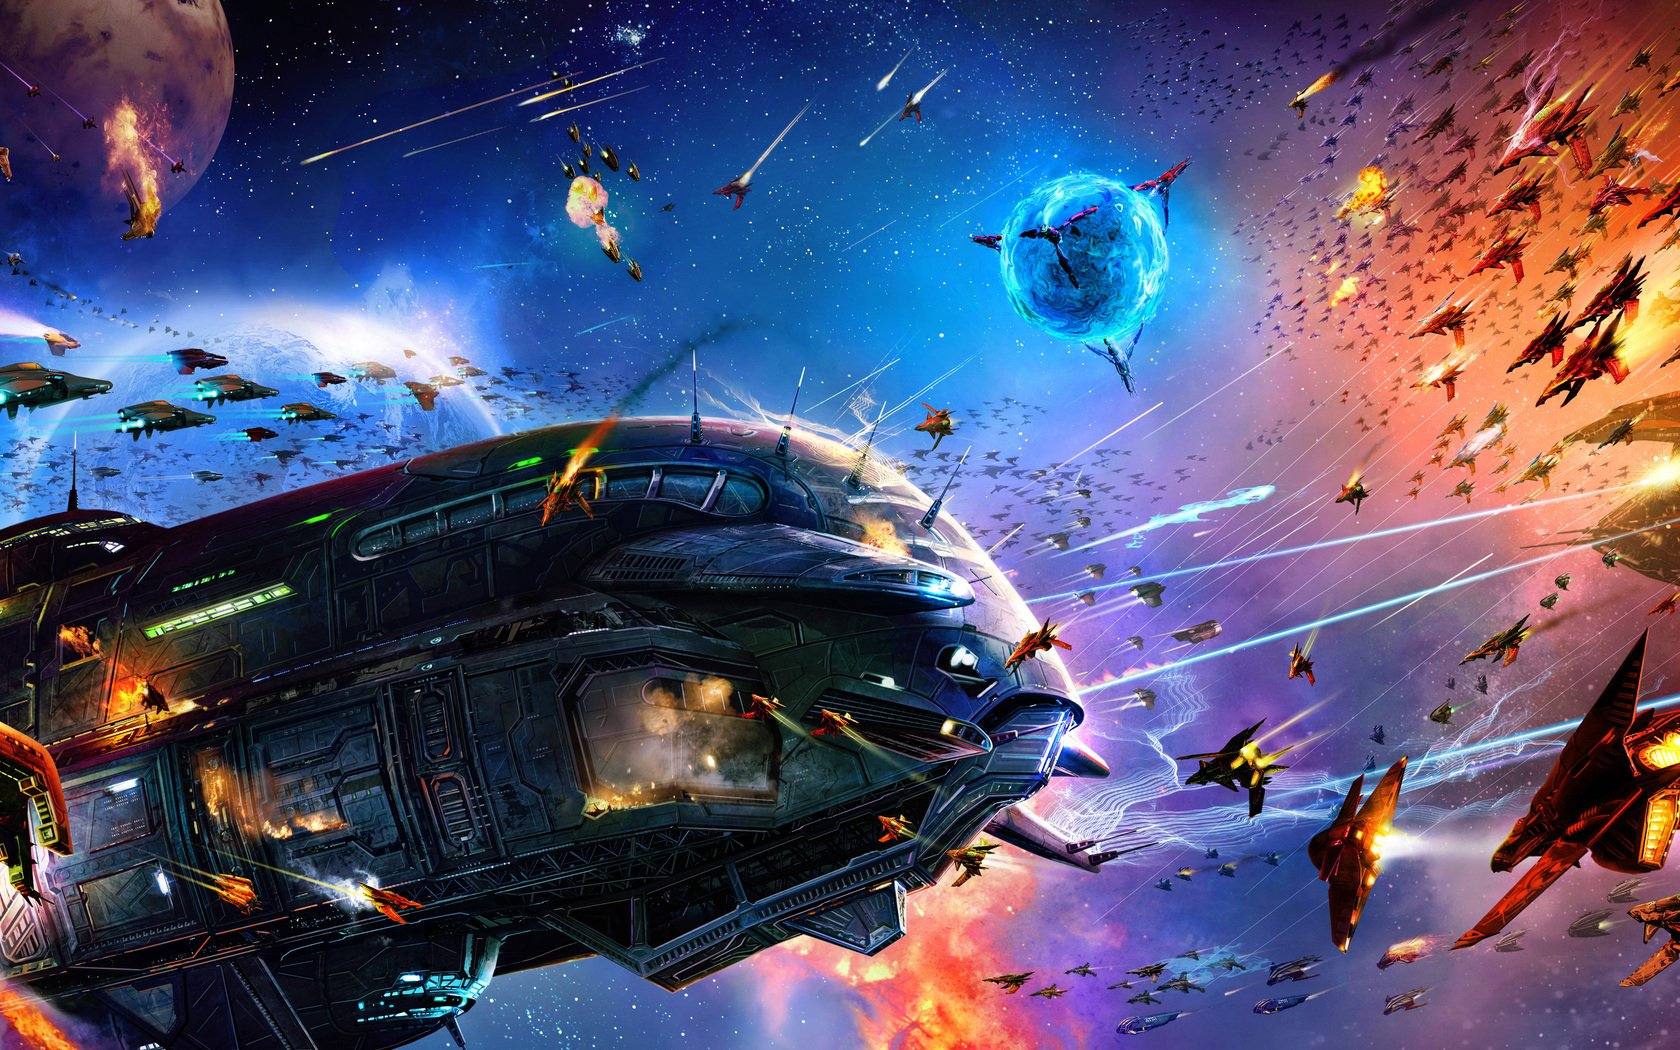 Epic Space Battle Wallpapers